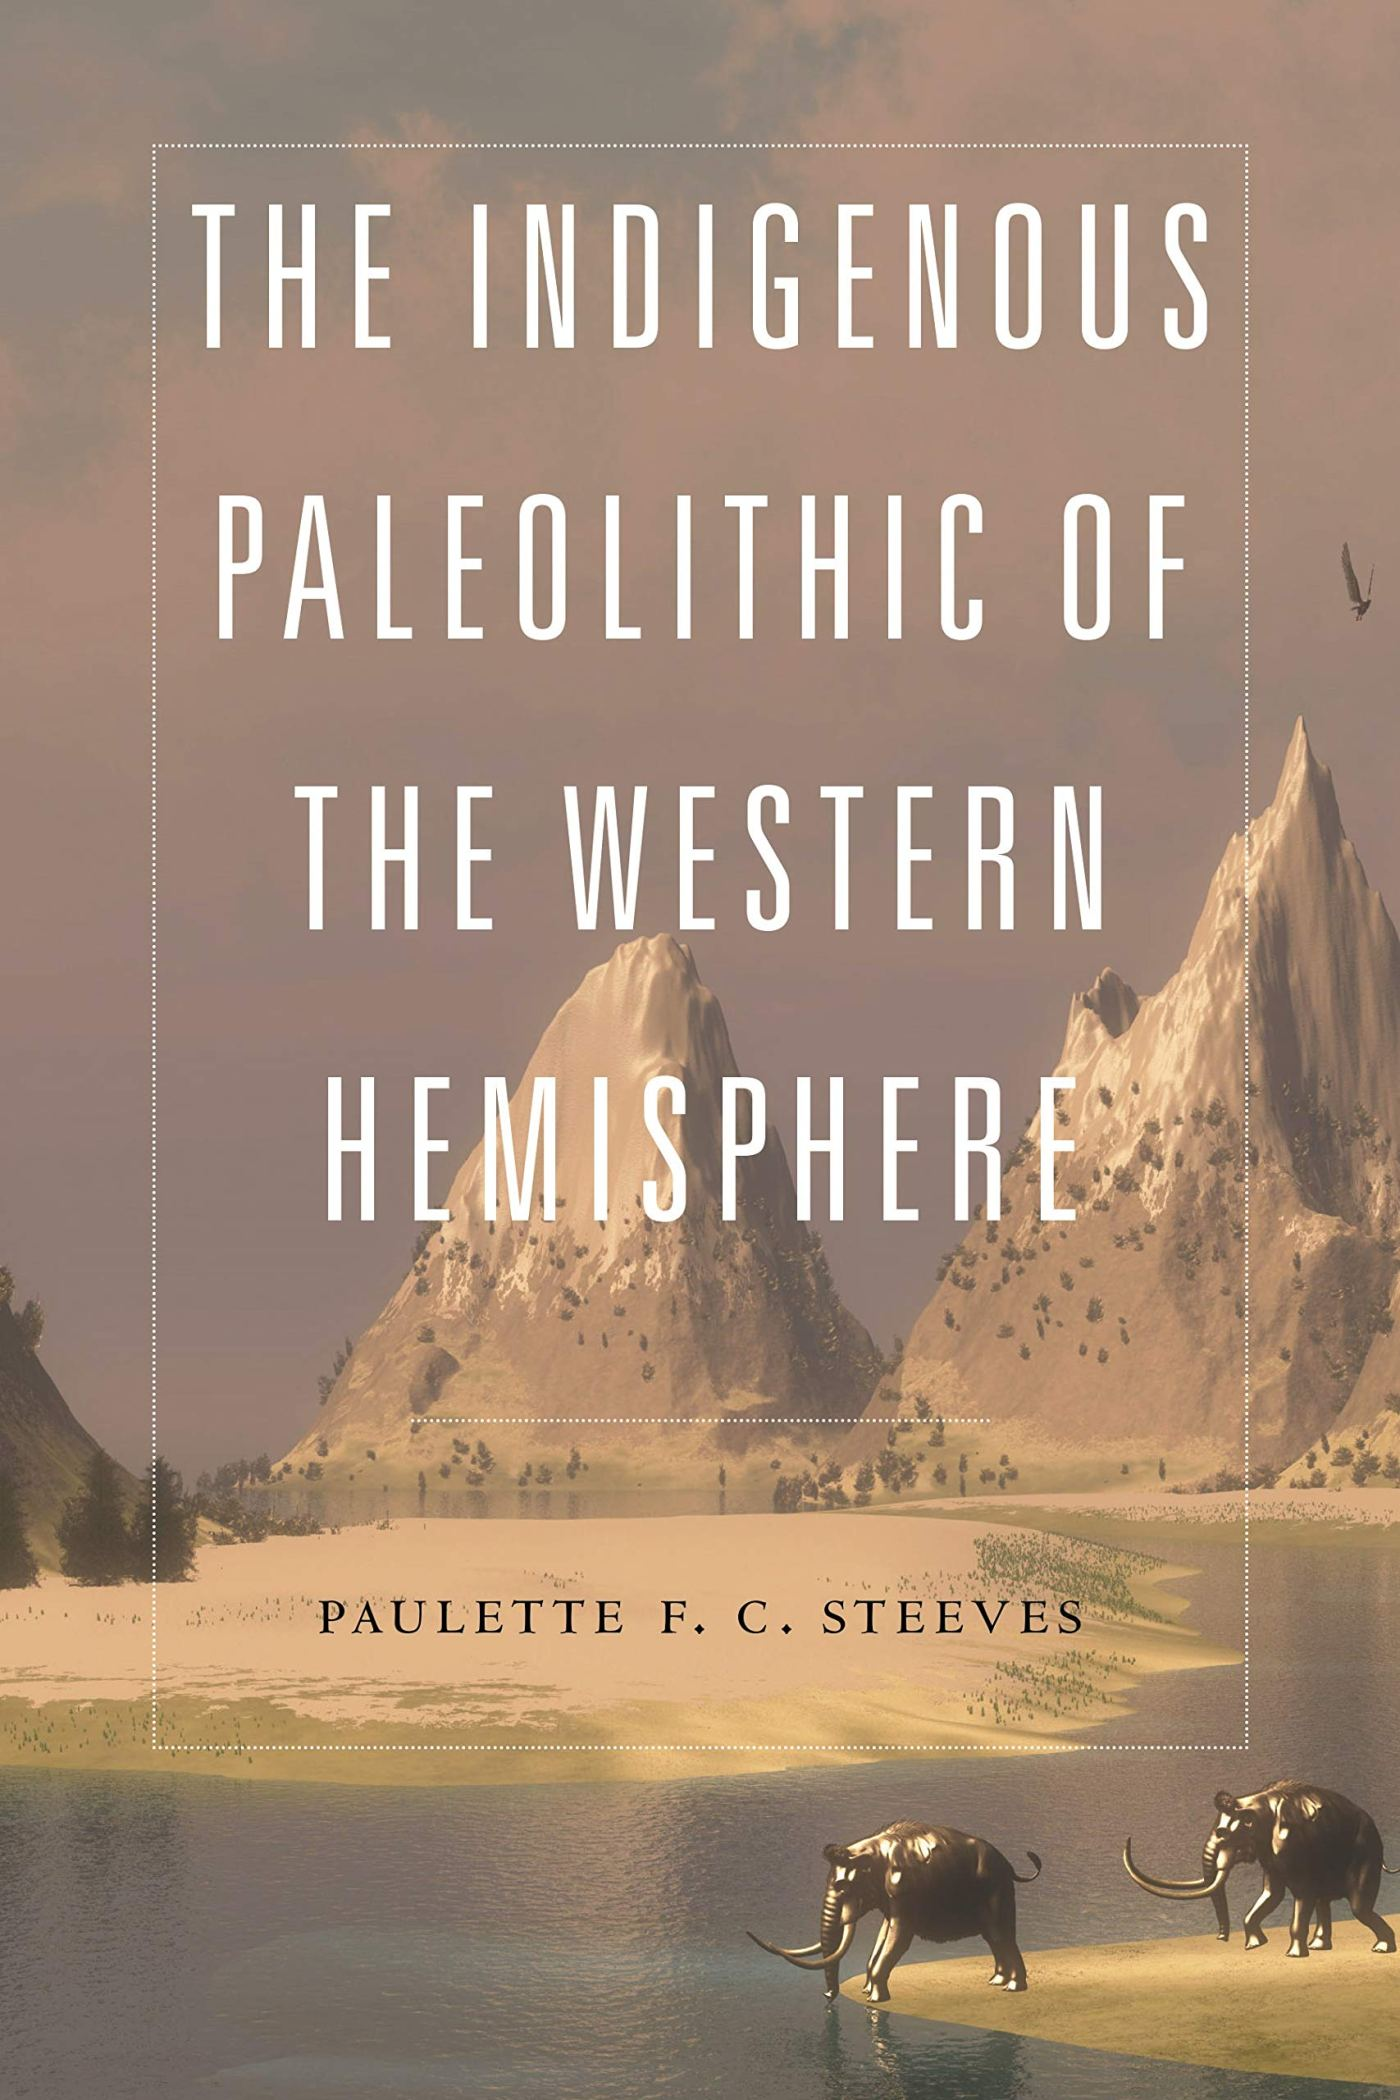 Book Cover of The Indigenous Paleolithic of the Western Hemisphere